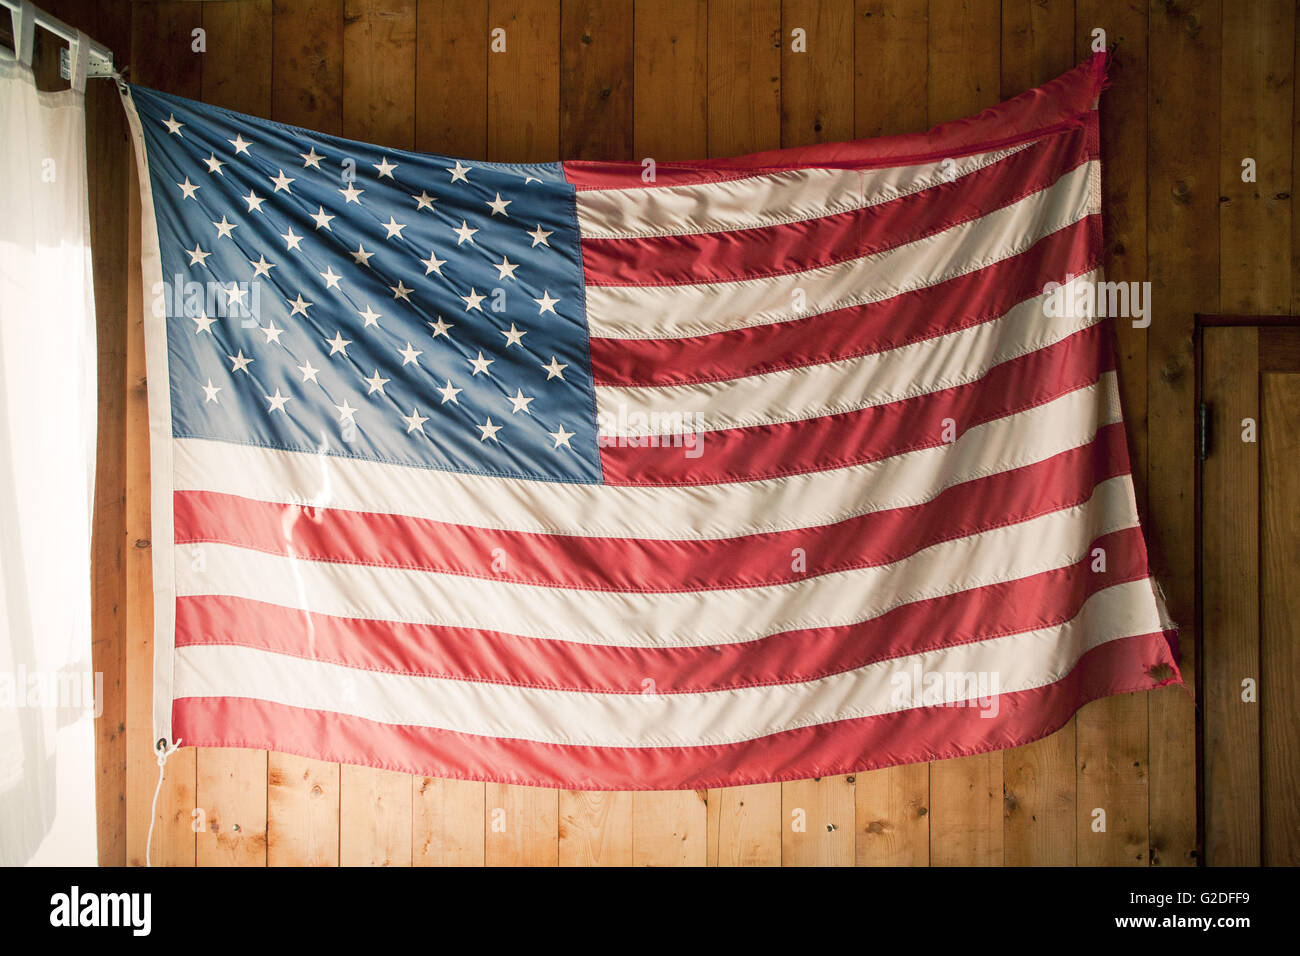 Image result for flag on wall